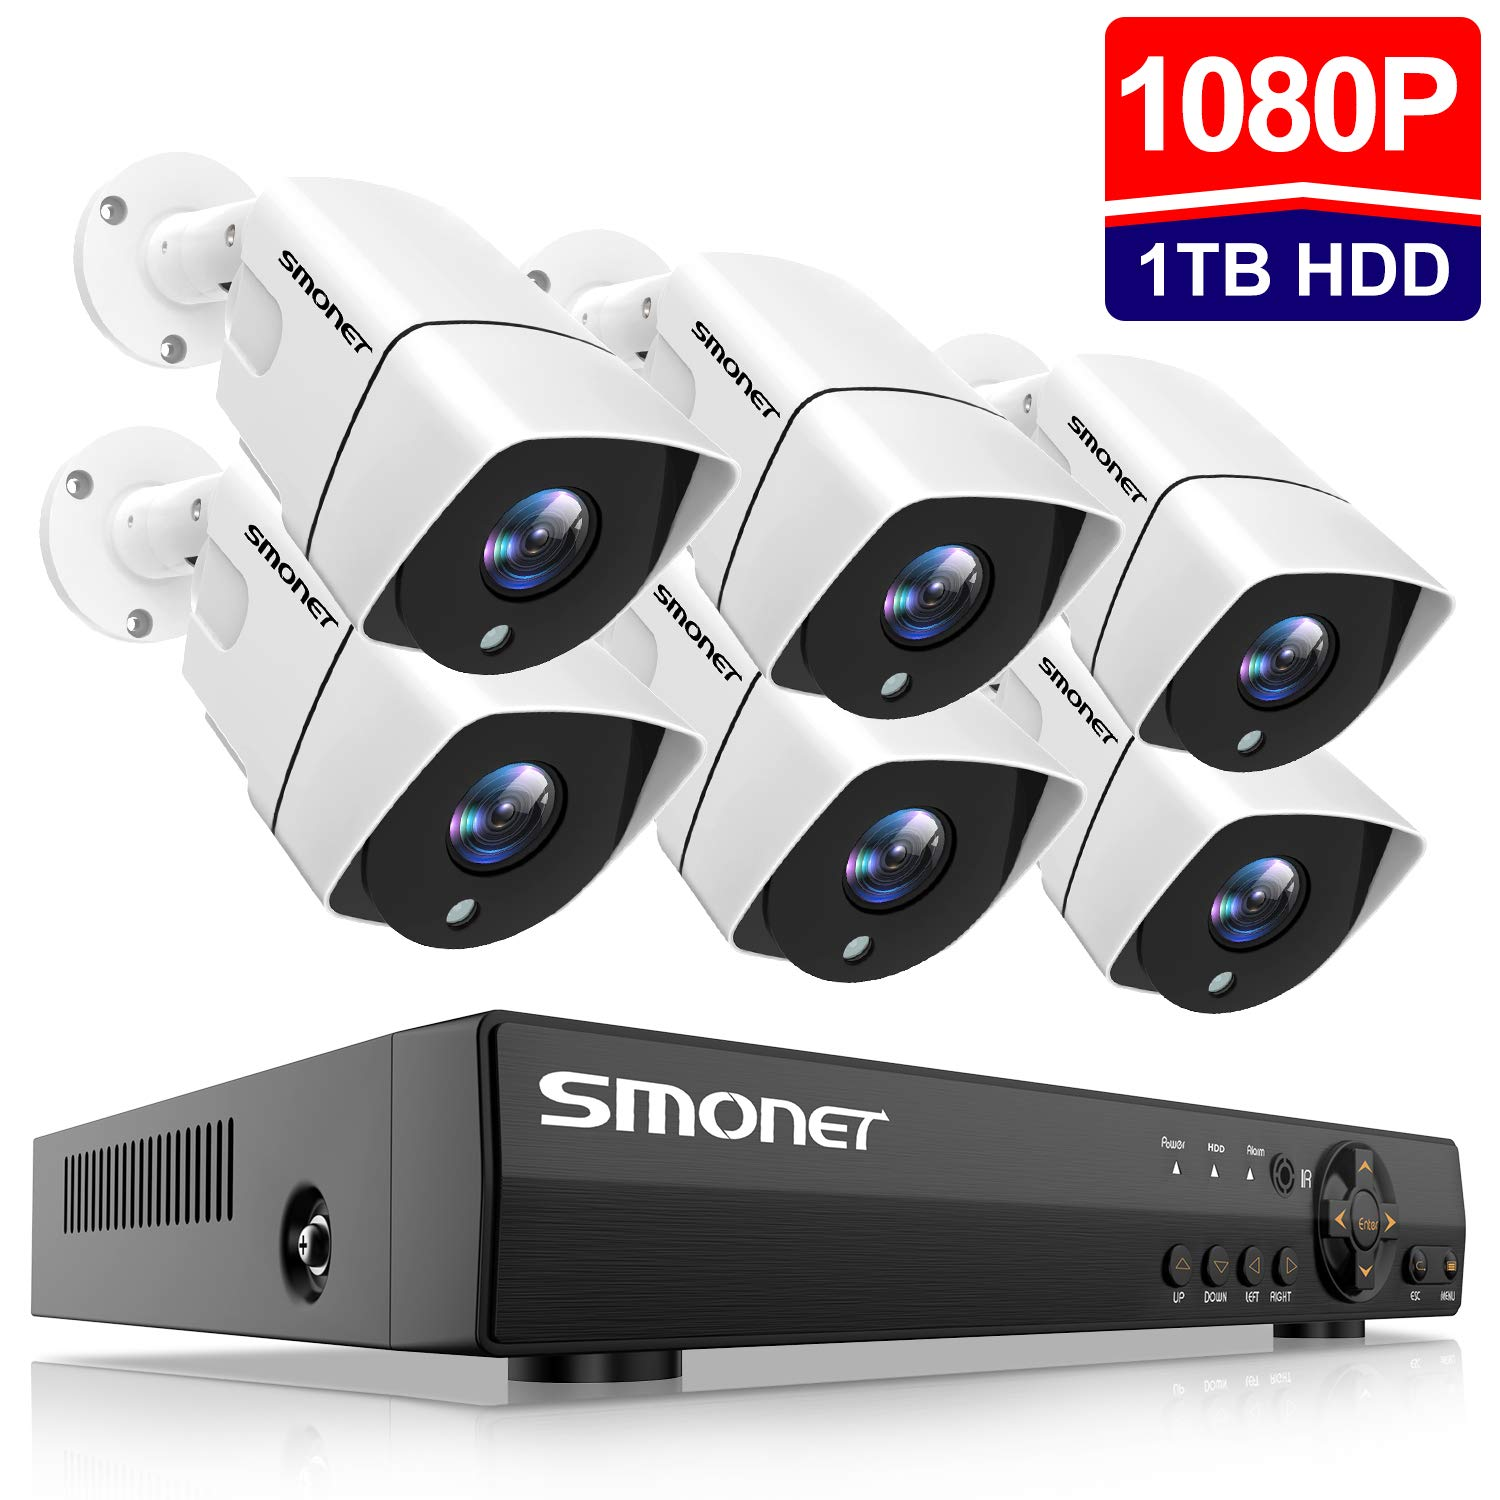 Full HD Security Camera System Outdoor,SMONET 8 Channel 1080P Home Security System 1TB Hard Drive ,6pcs 2MP Weatherproof Security Cameras,65ft Night Vision,P2P, Remote View,Free APP